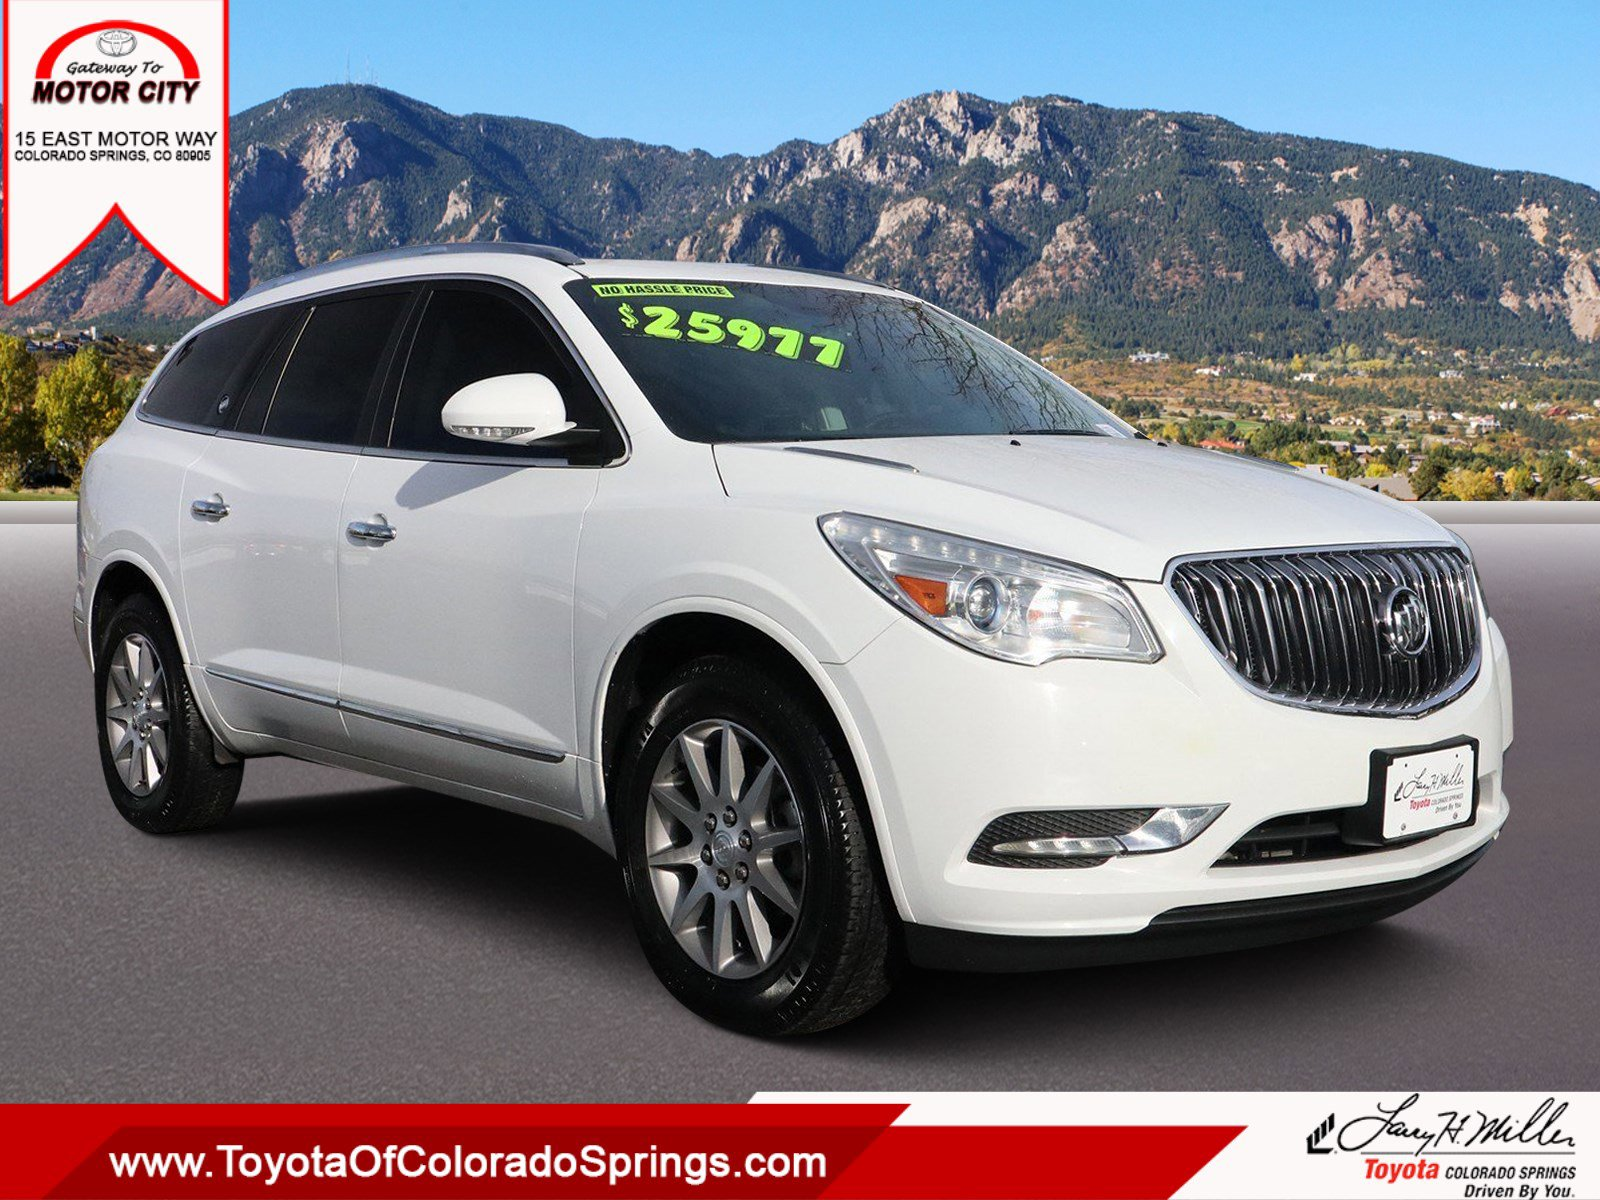 2017 Buick Enclave AWD Leather image